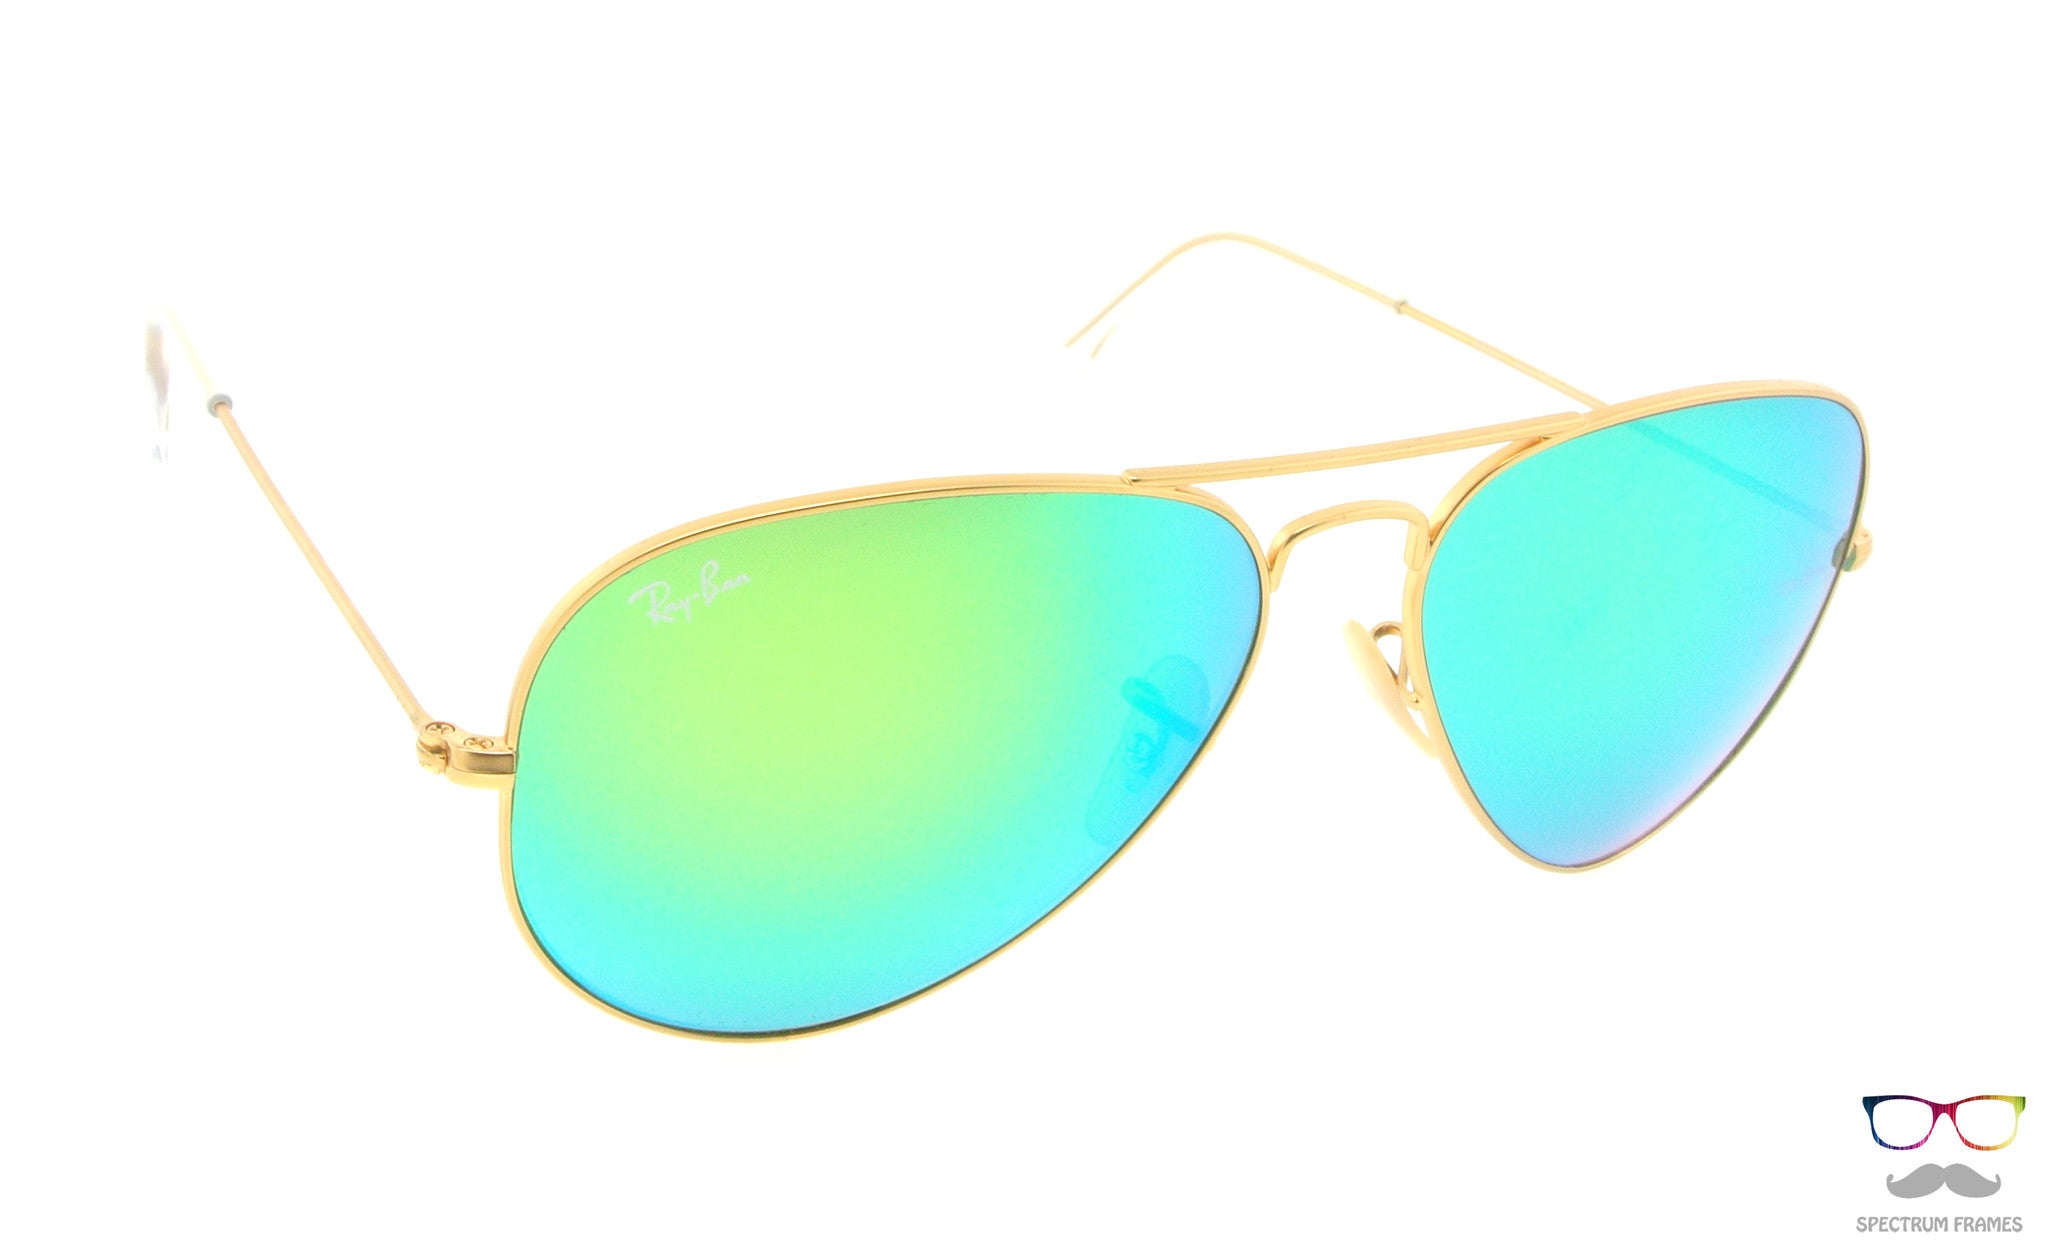 b520086fc4 ... Ray Ban Sunglasses RB 3025 112 19 Gold with Green Mirrored Lens Size 55  ...